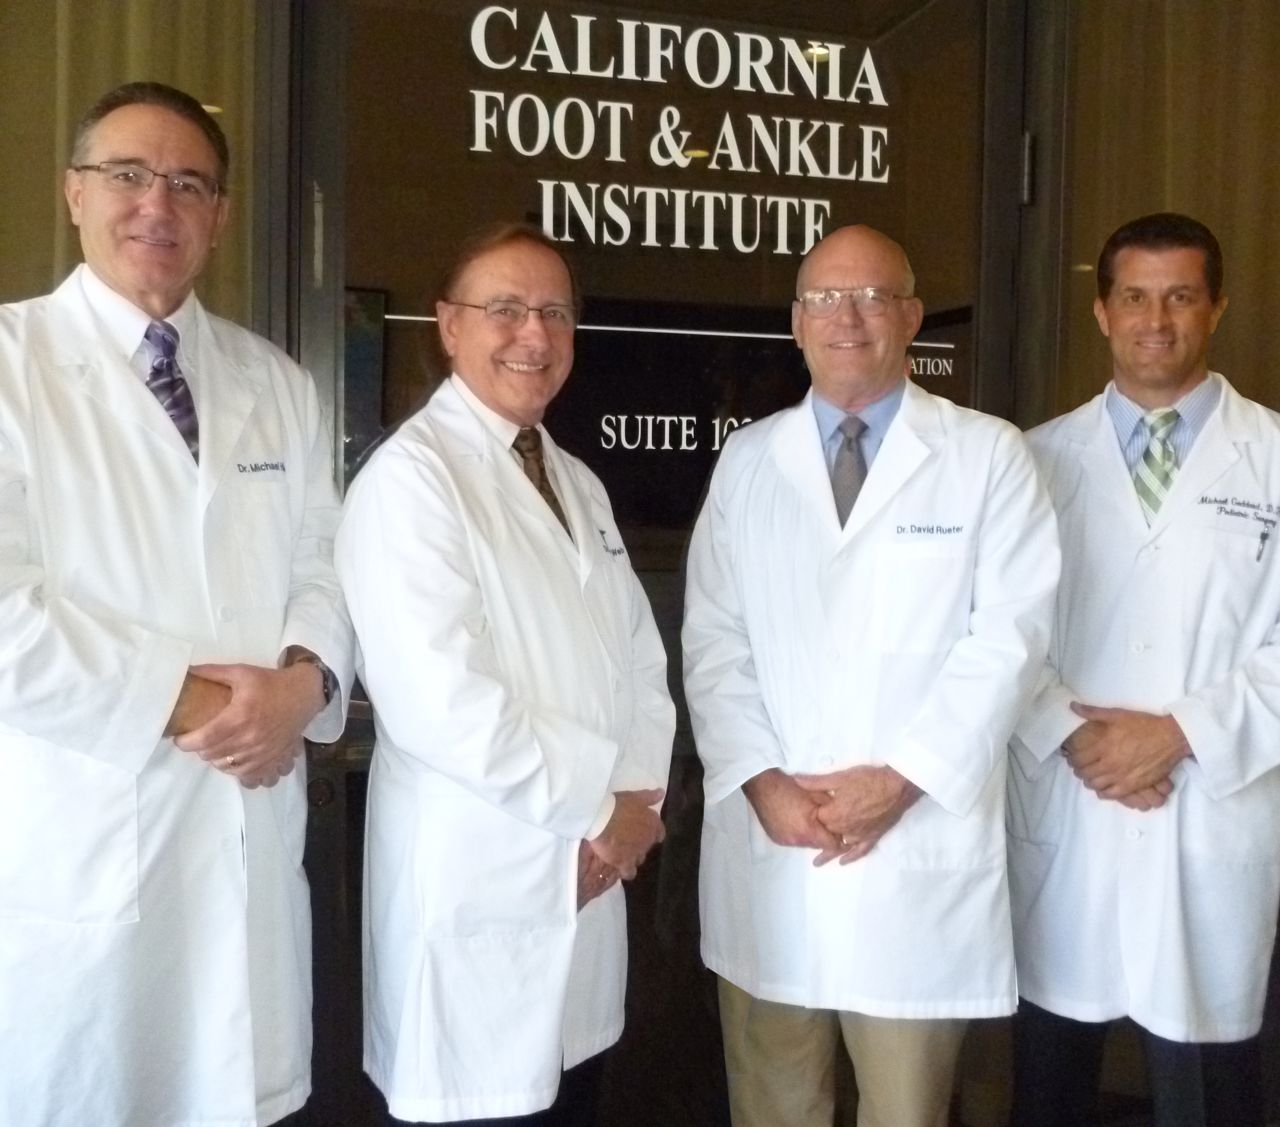 The podiatrists of California Foot & Ankle Institute